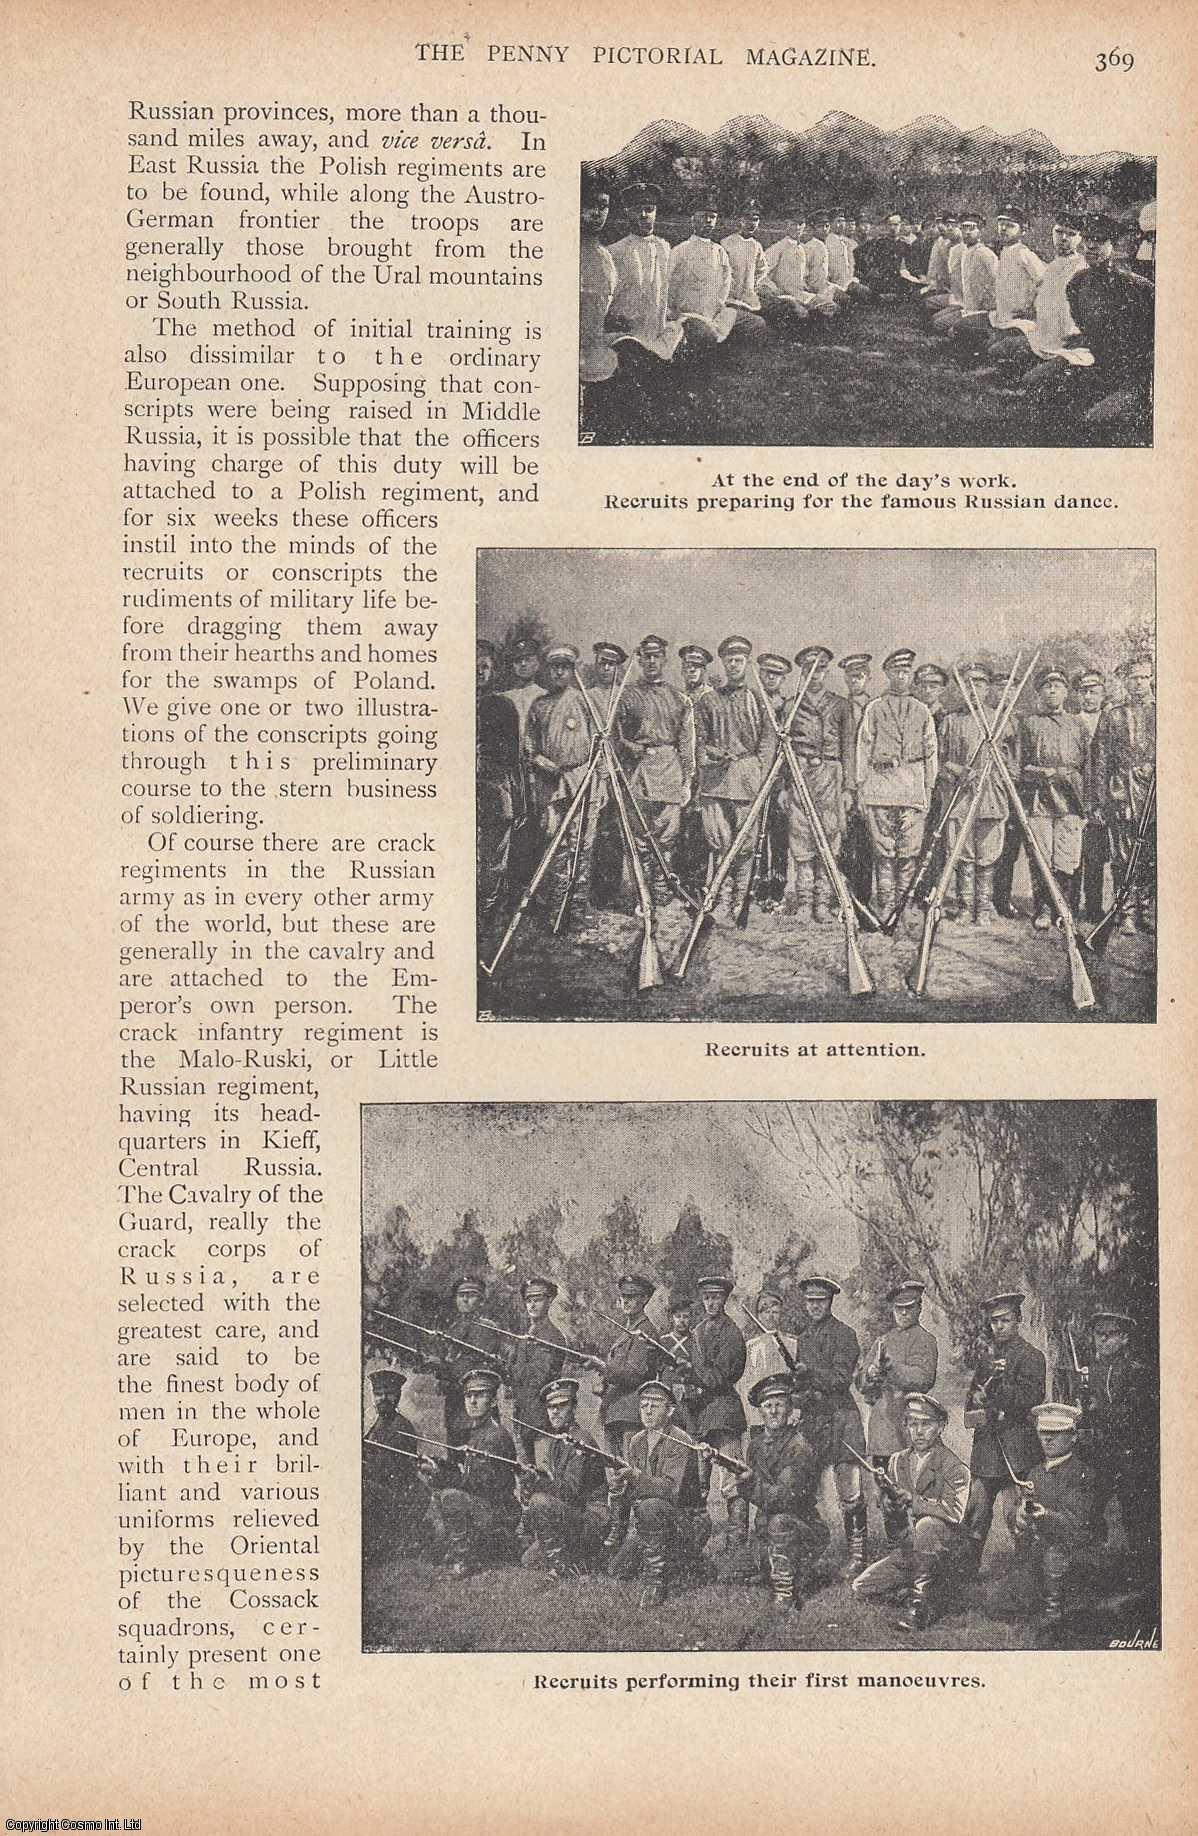 JEFFERSON, R.L. - Russia's gigantic army. Illustrated by photographs of various types of troops. This is an original article from the Penny Pictorial Magazine, 1899.